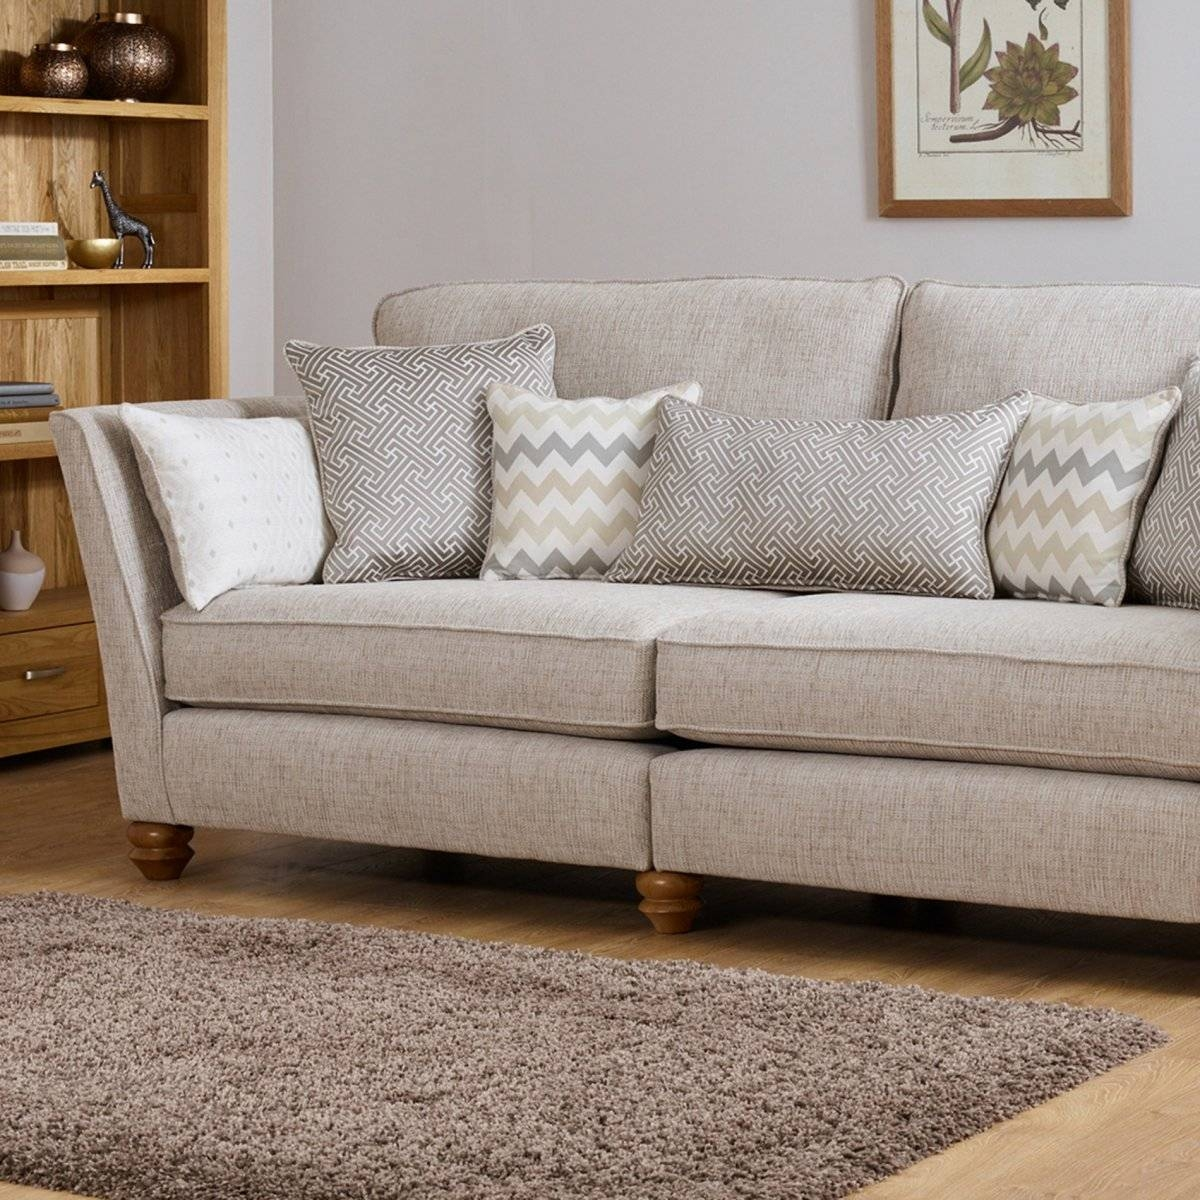 Gainsborough 4 Seater Sofa In Black | Oak Furniture Land pertaining to Four Seat Sofas (Image 16 of 30)